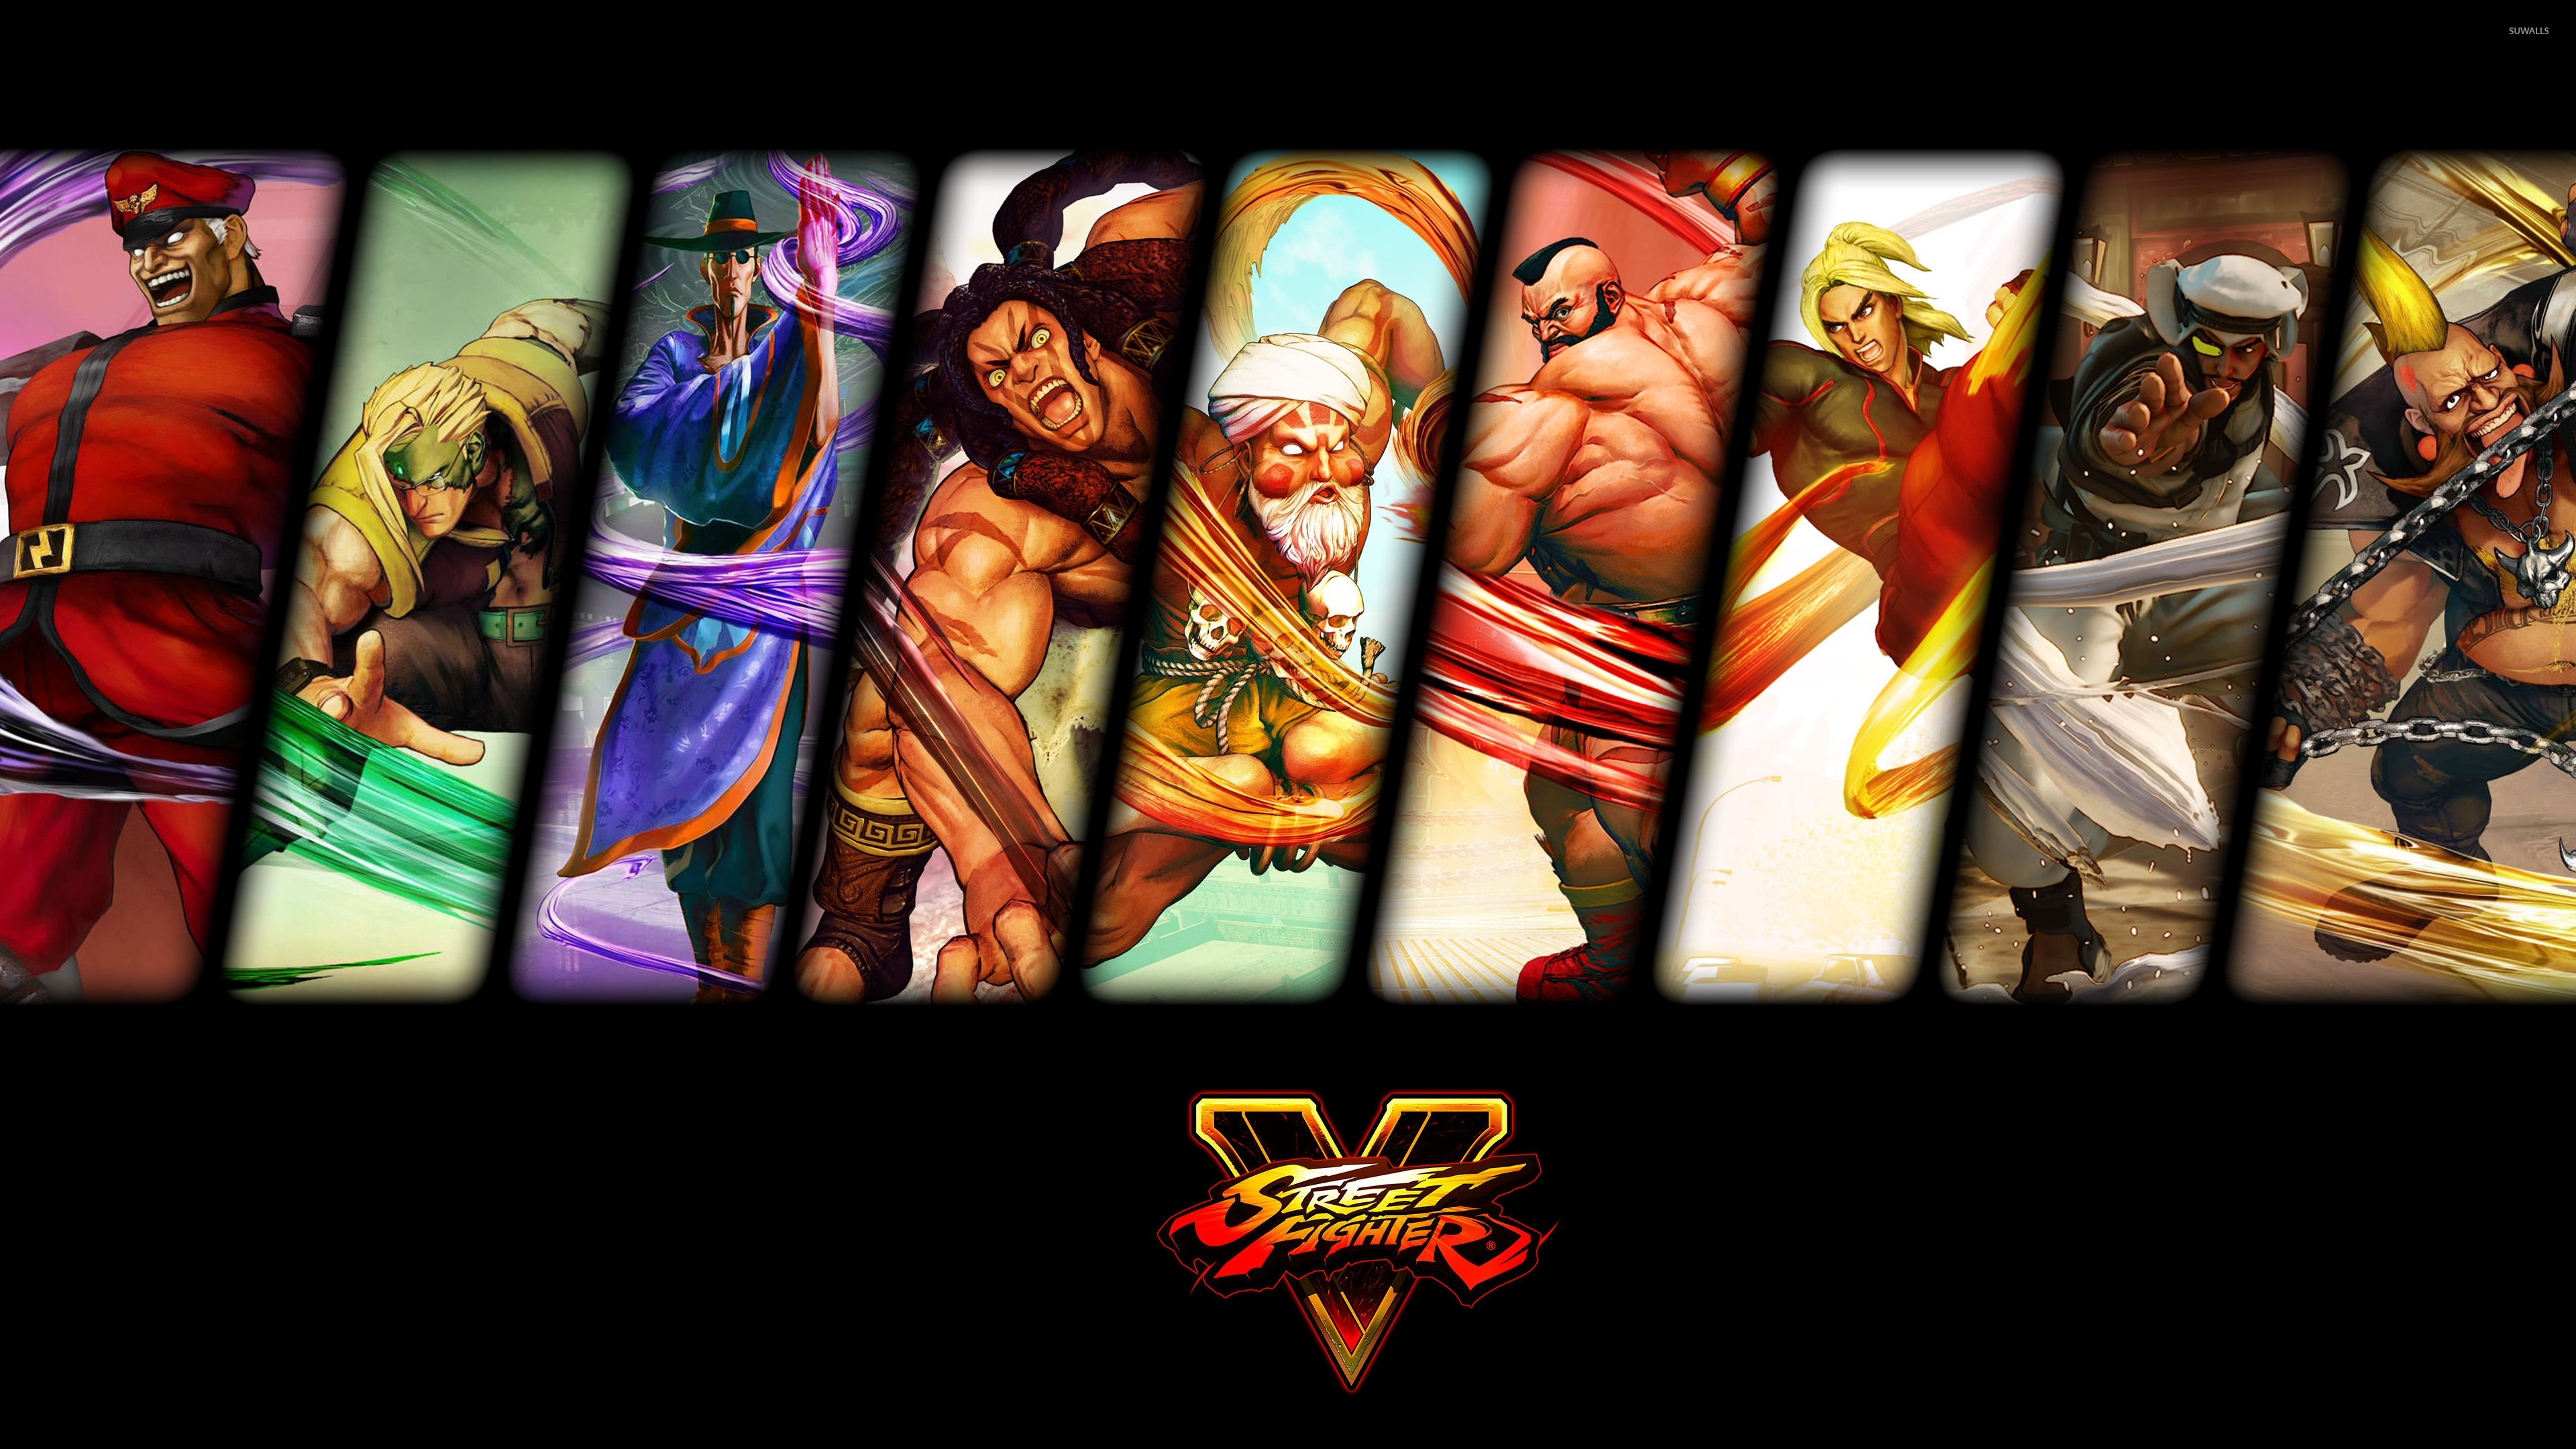 Male Characters From Street Fighter V Wallpaper Game Wallpapers